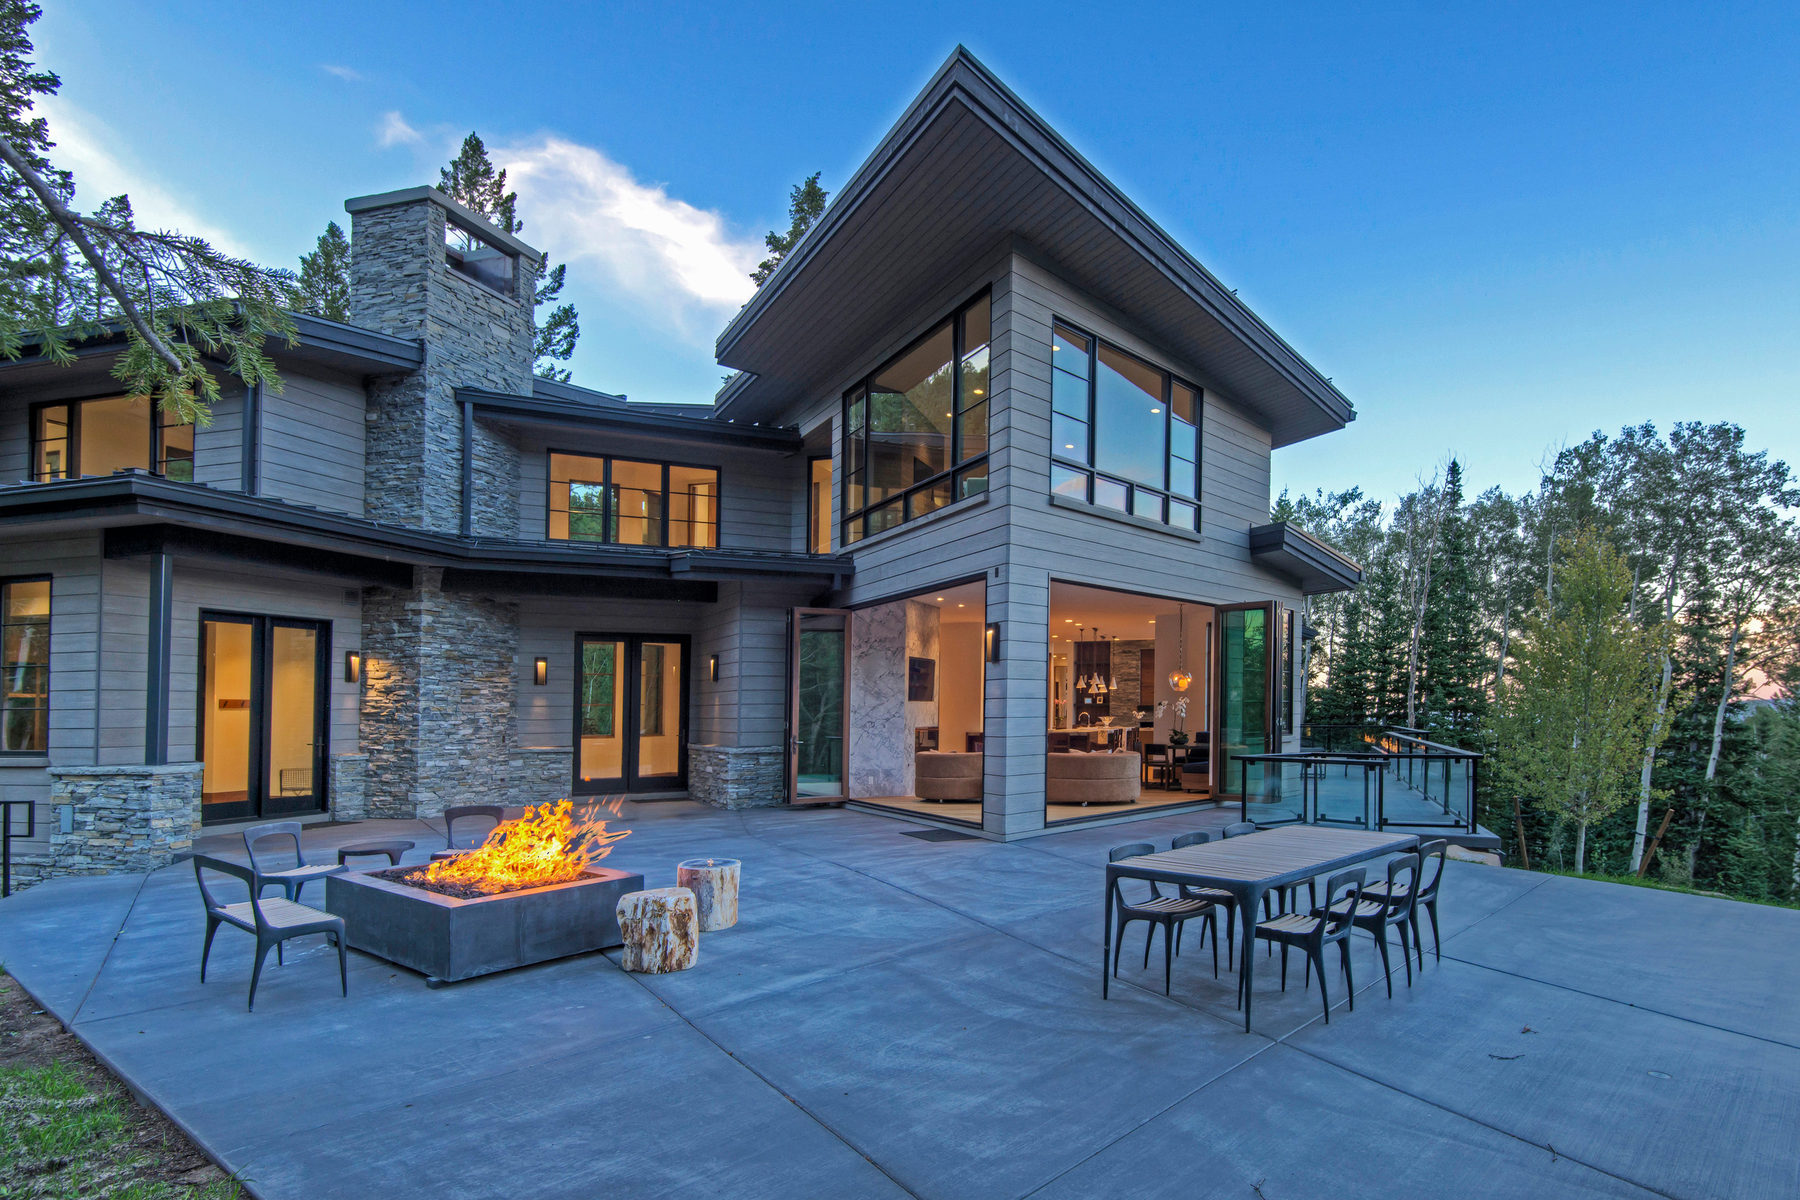 Single Family Home for Sale at Stunning New Construction in the Colony 79 White Pine Canyon Rd Park City, Utah 84060 United States